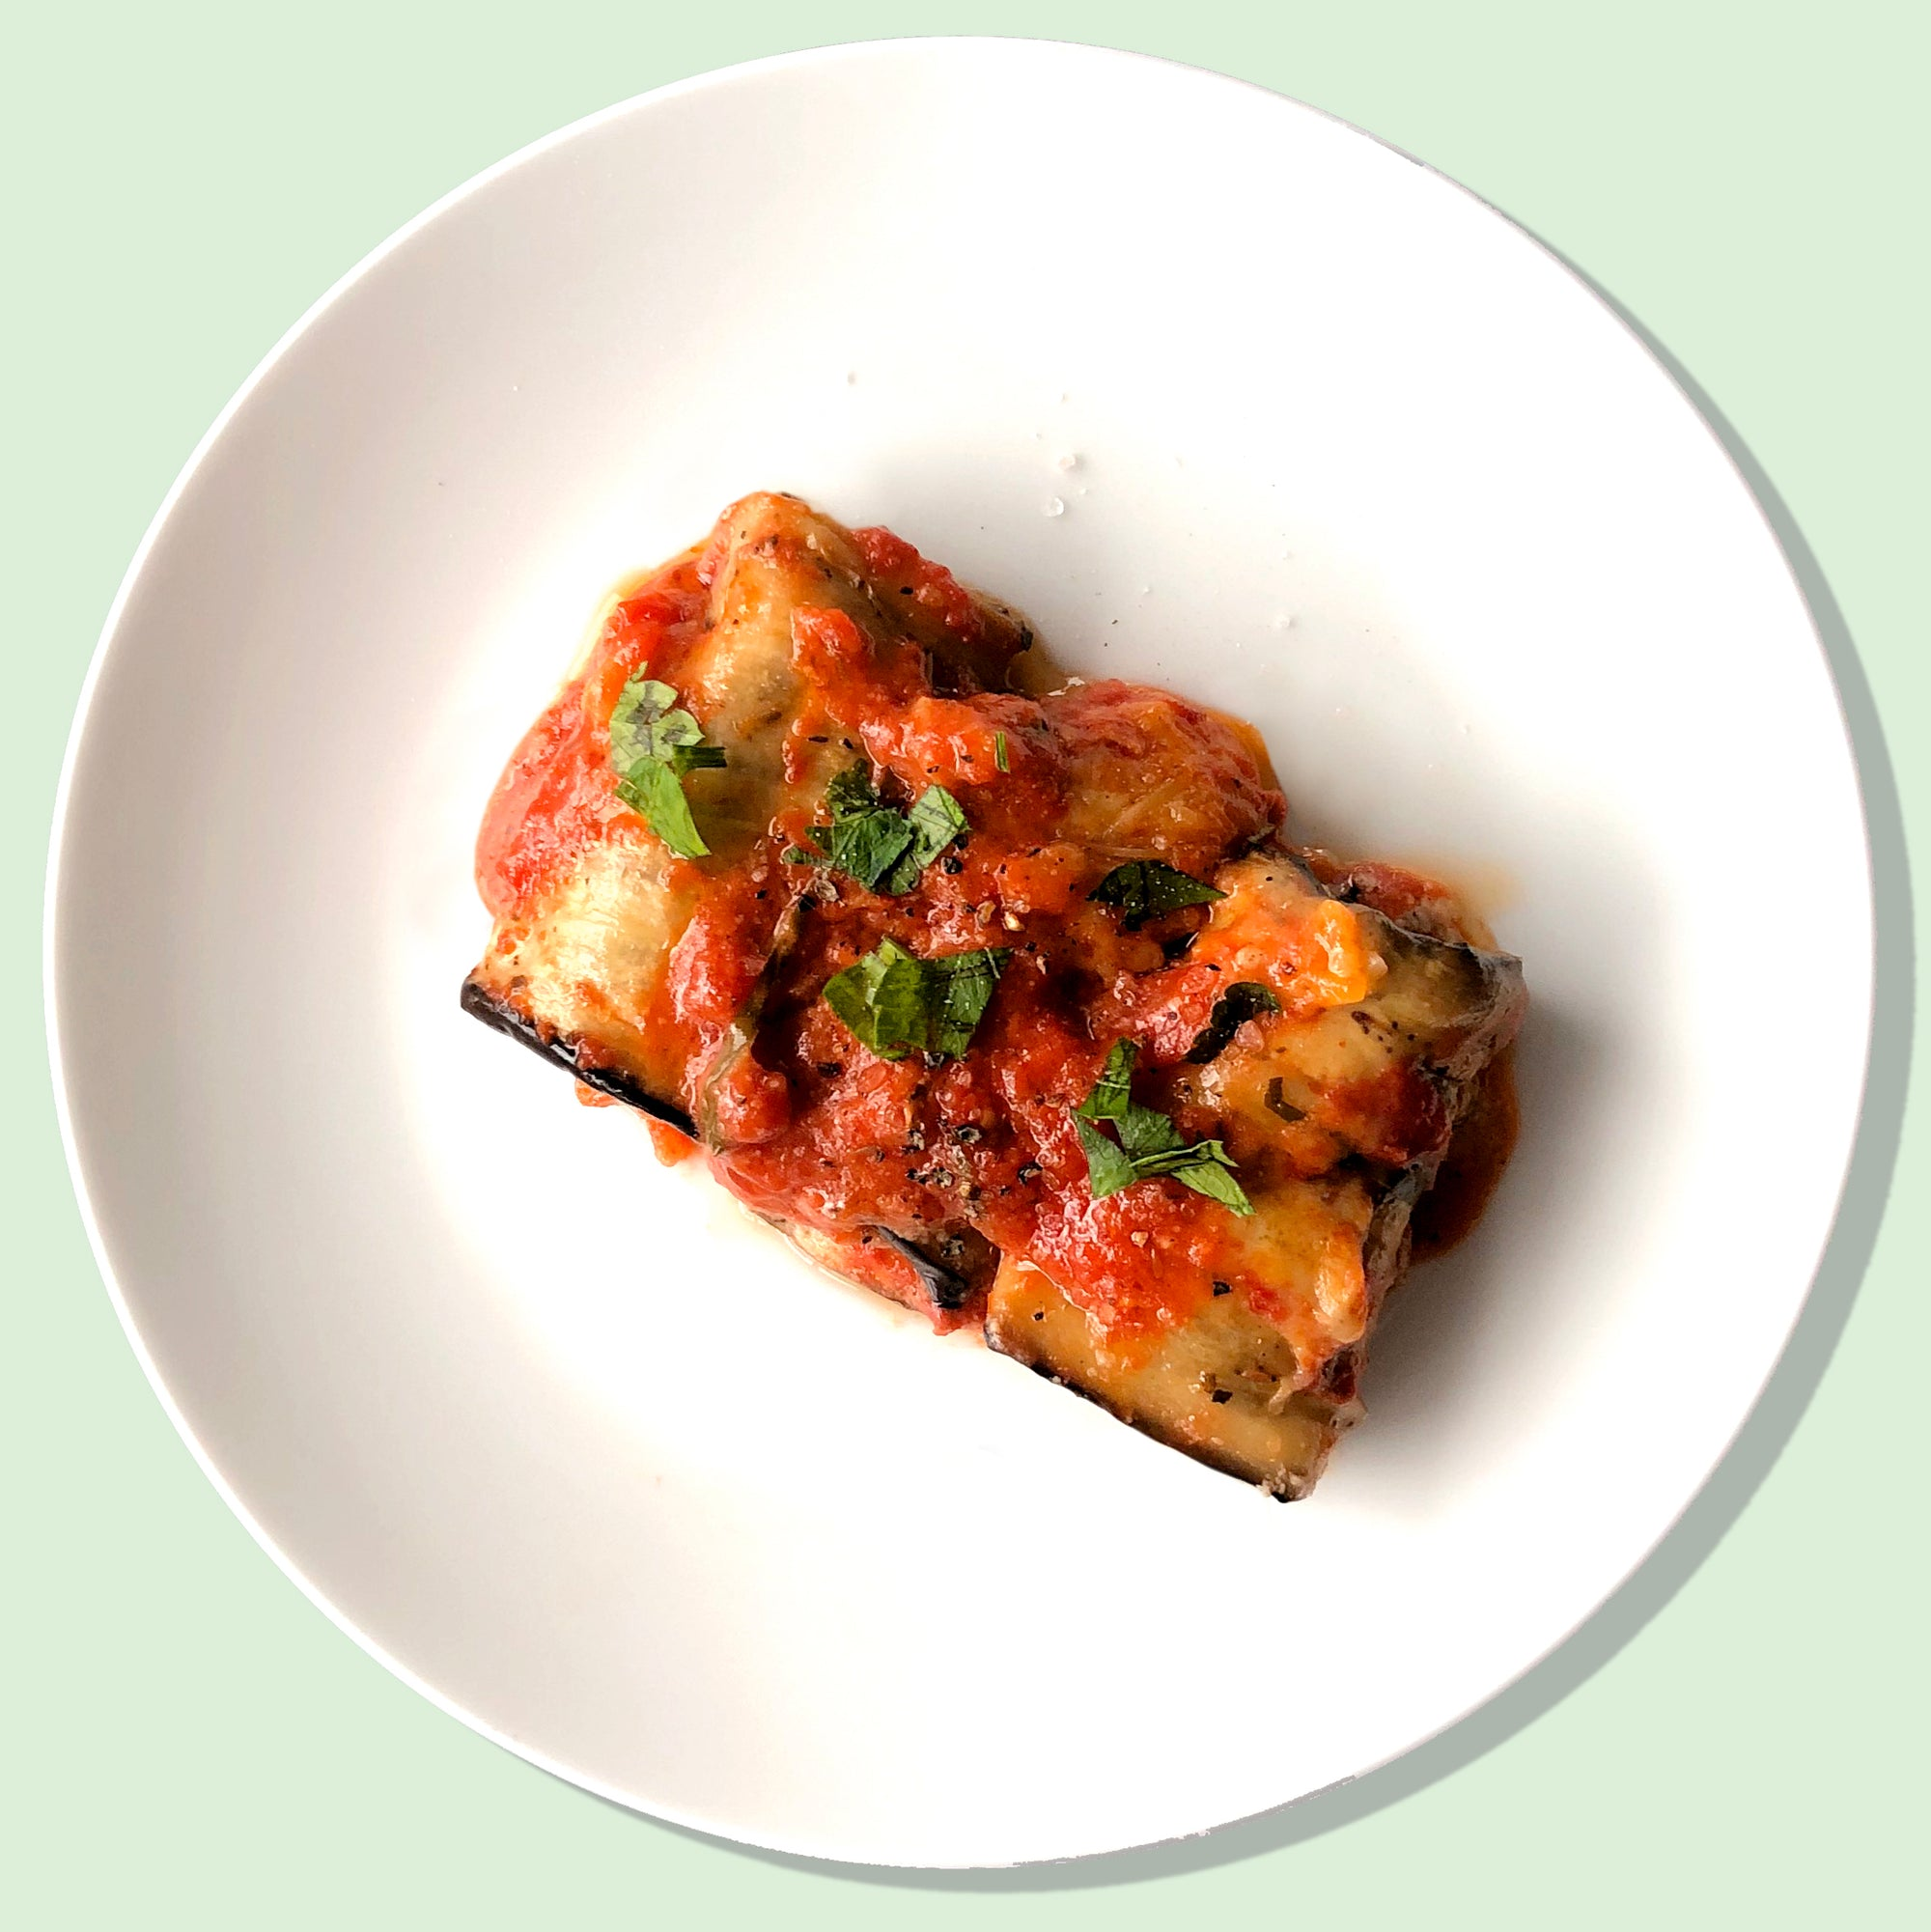 Eggplant Rollatini with Dibble Sour Cream